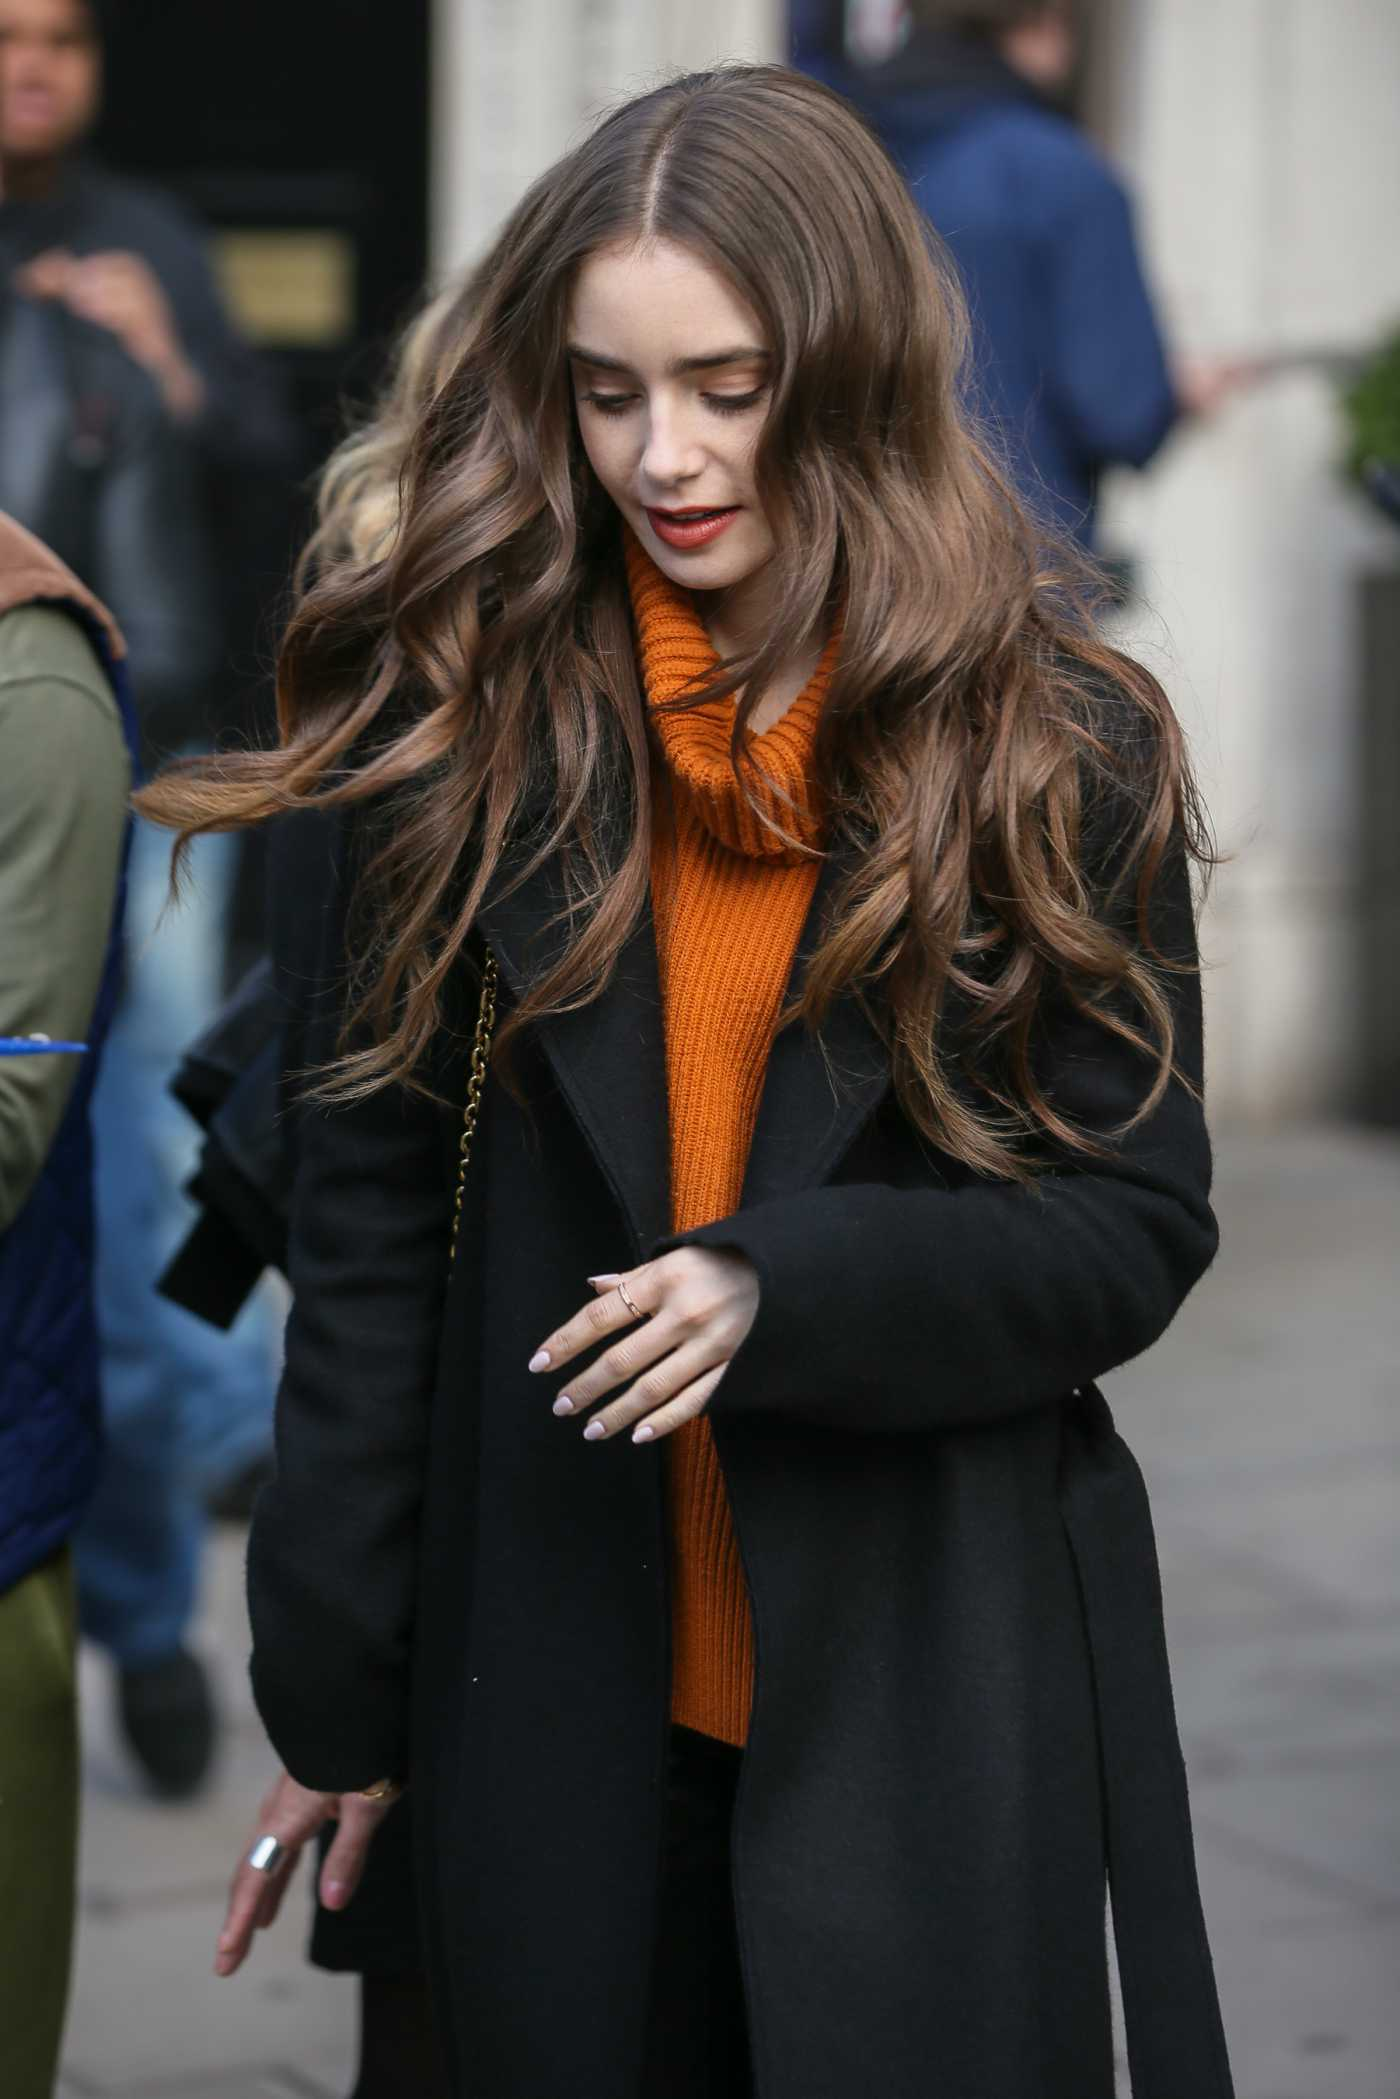 Lily Collins in an Orange Sweater Arrives at Kiss Radio Studios in London 04/29/2019